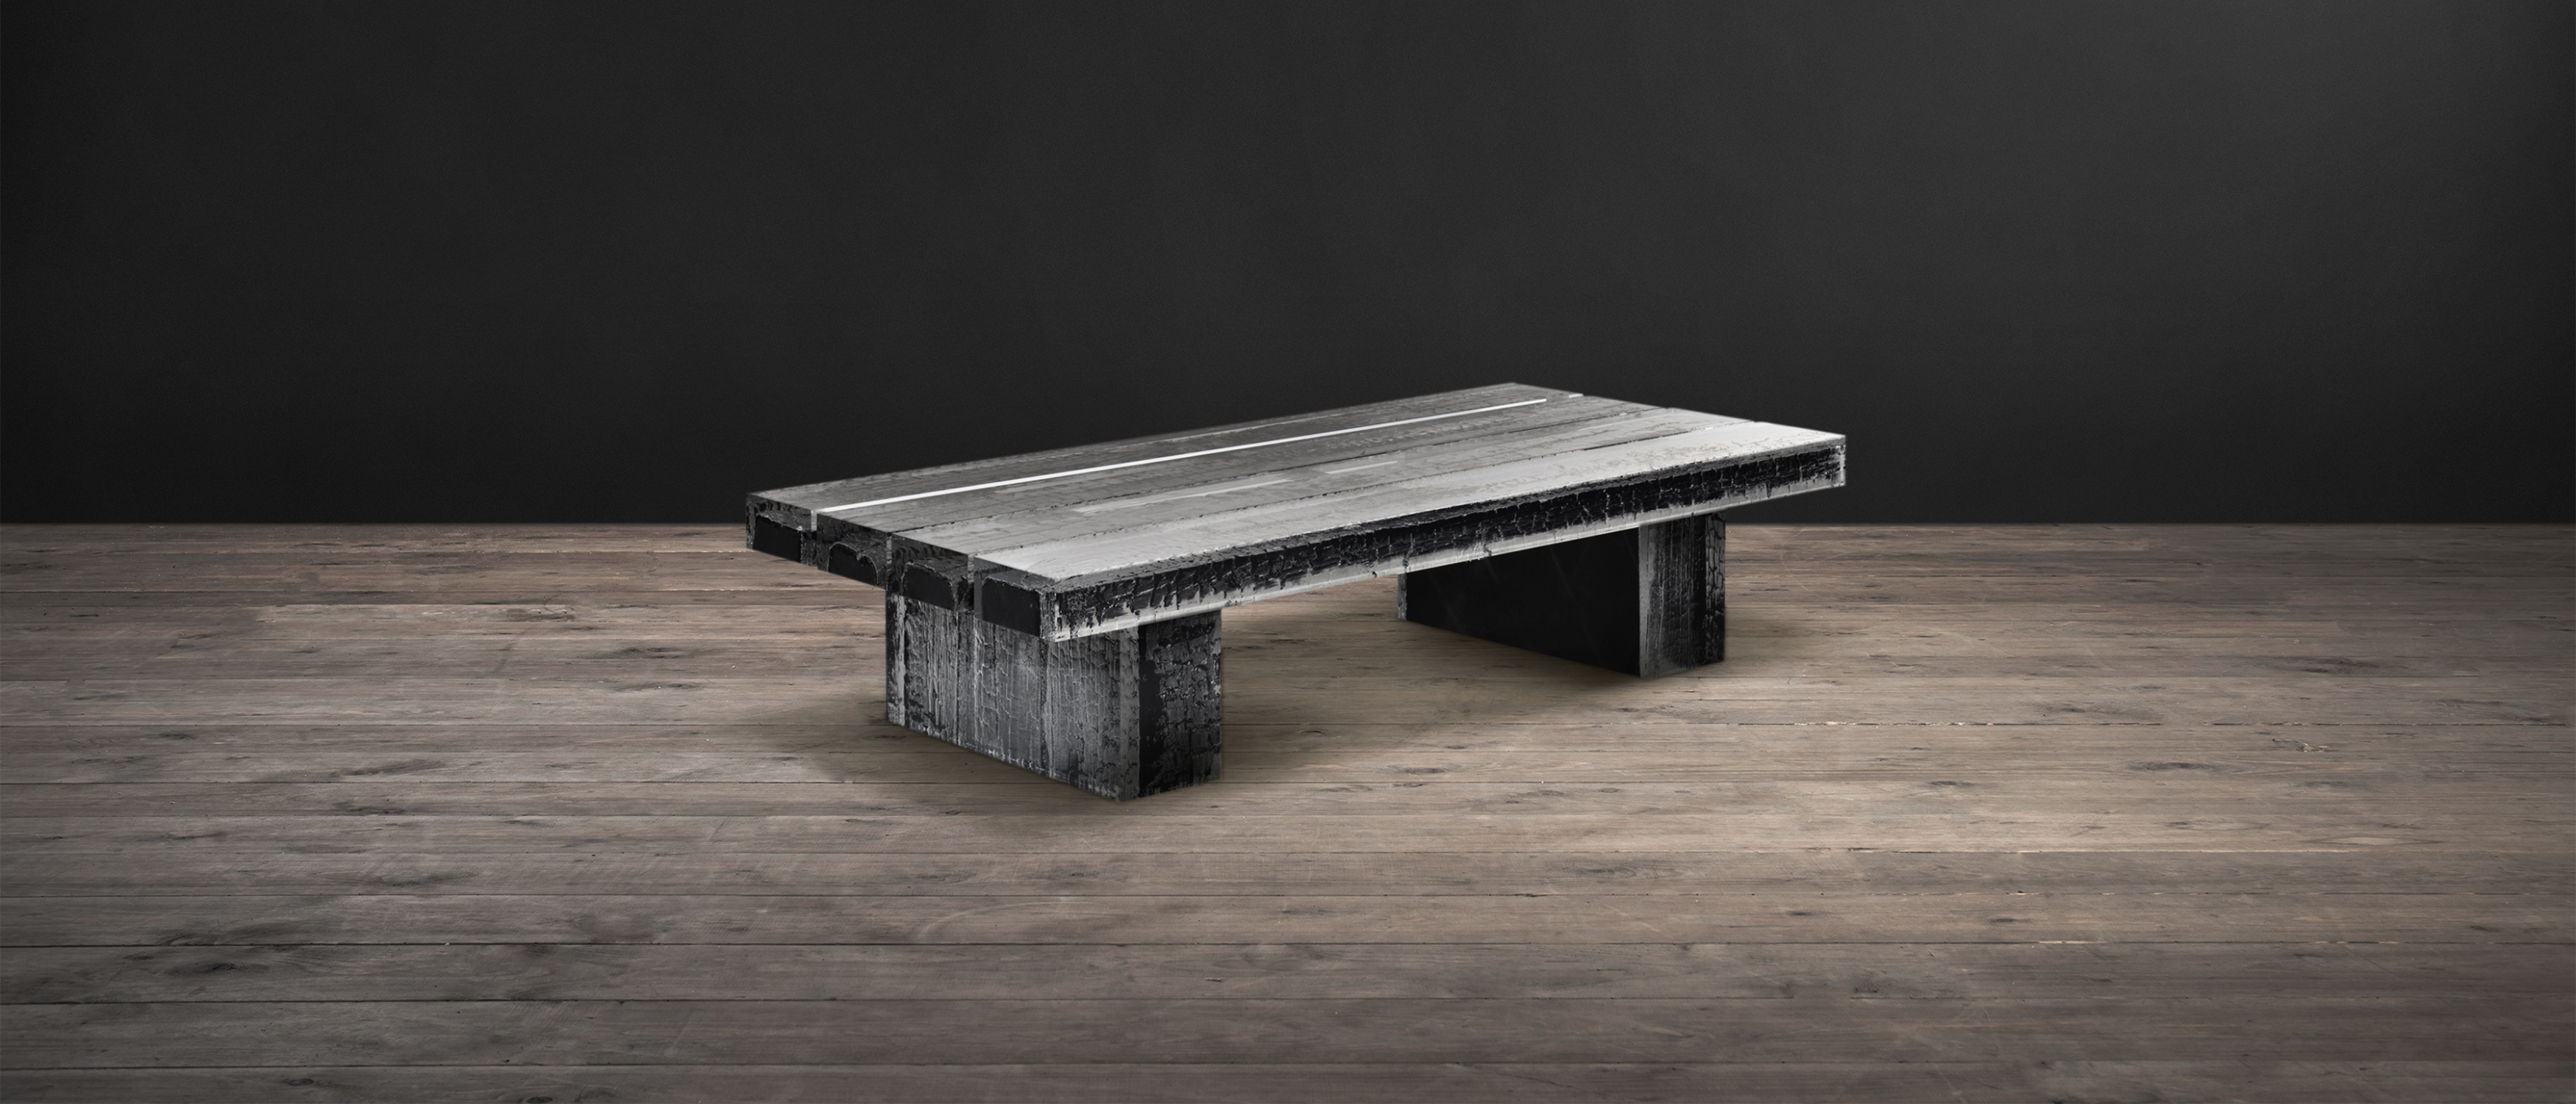 Acrylic Wood Coffee Tables Glacier Timothy Oulton pertaining to size 3500 X 1500